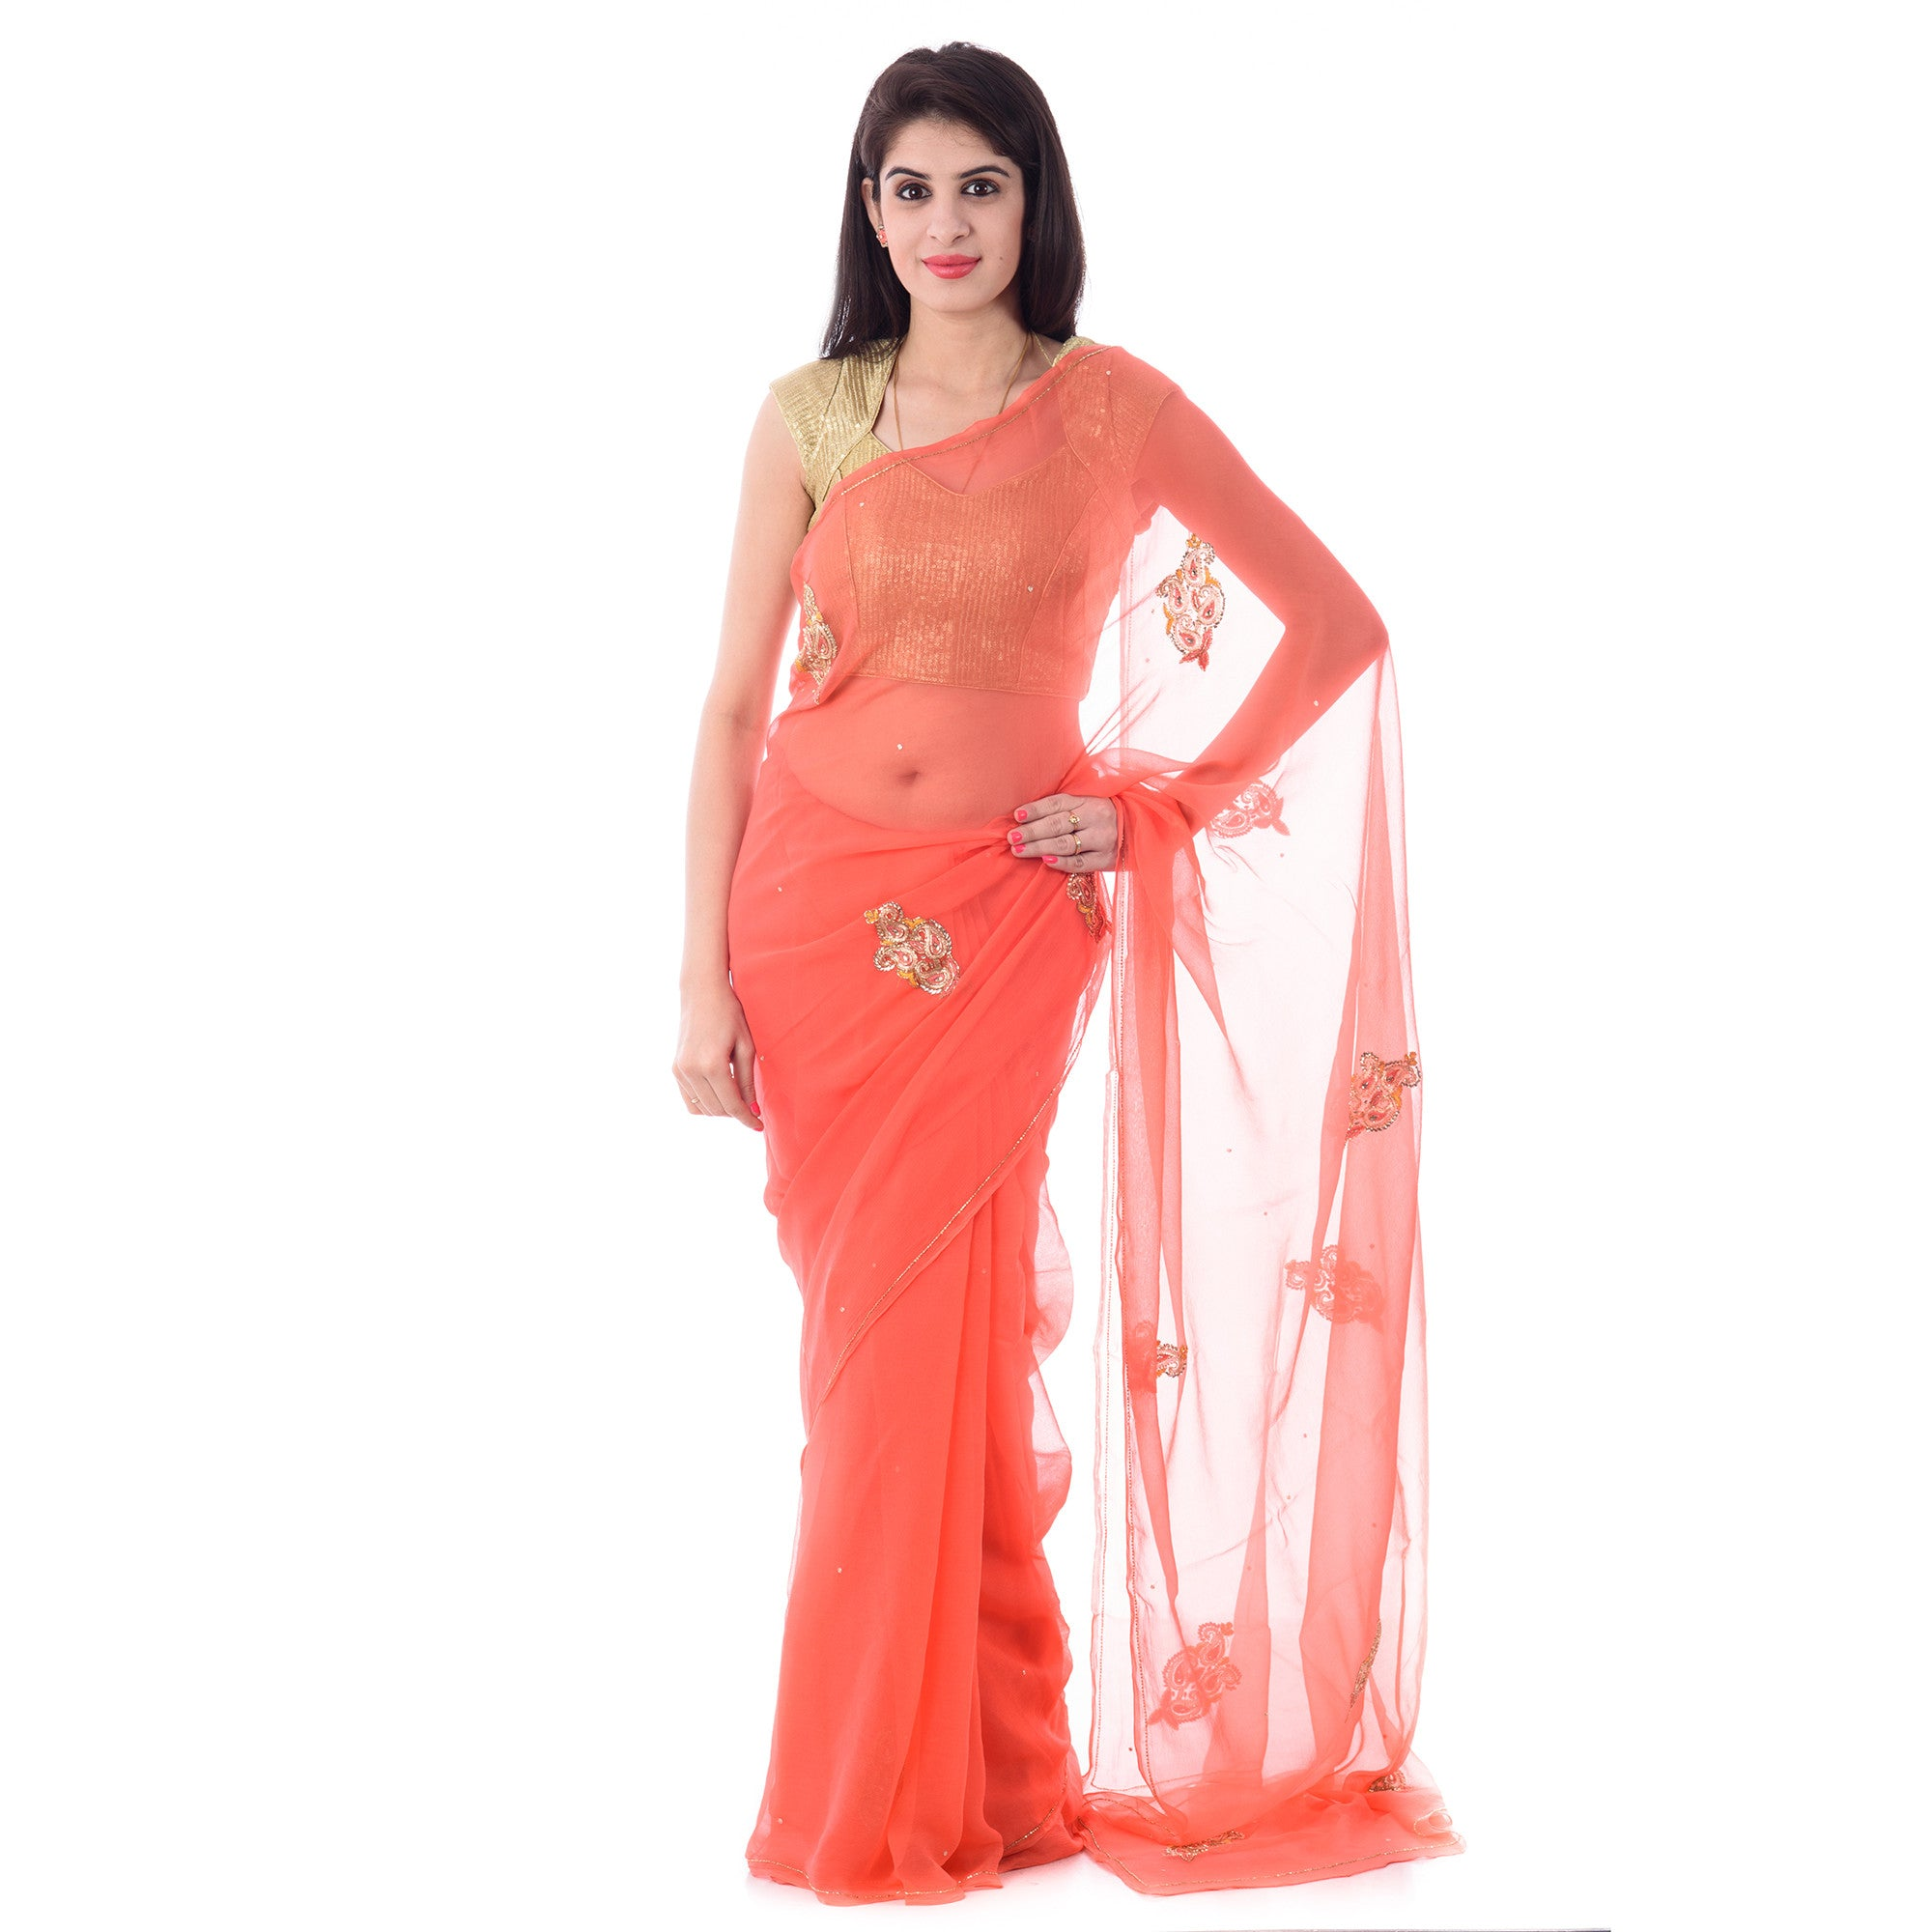 Peach Chiffion Intricate Aari and Resham Work Saree With Blouse Piece - Shri Krishnam